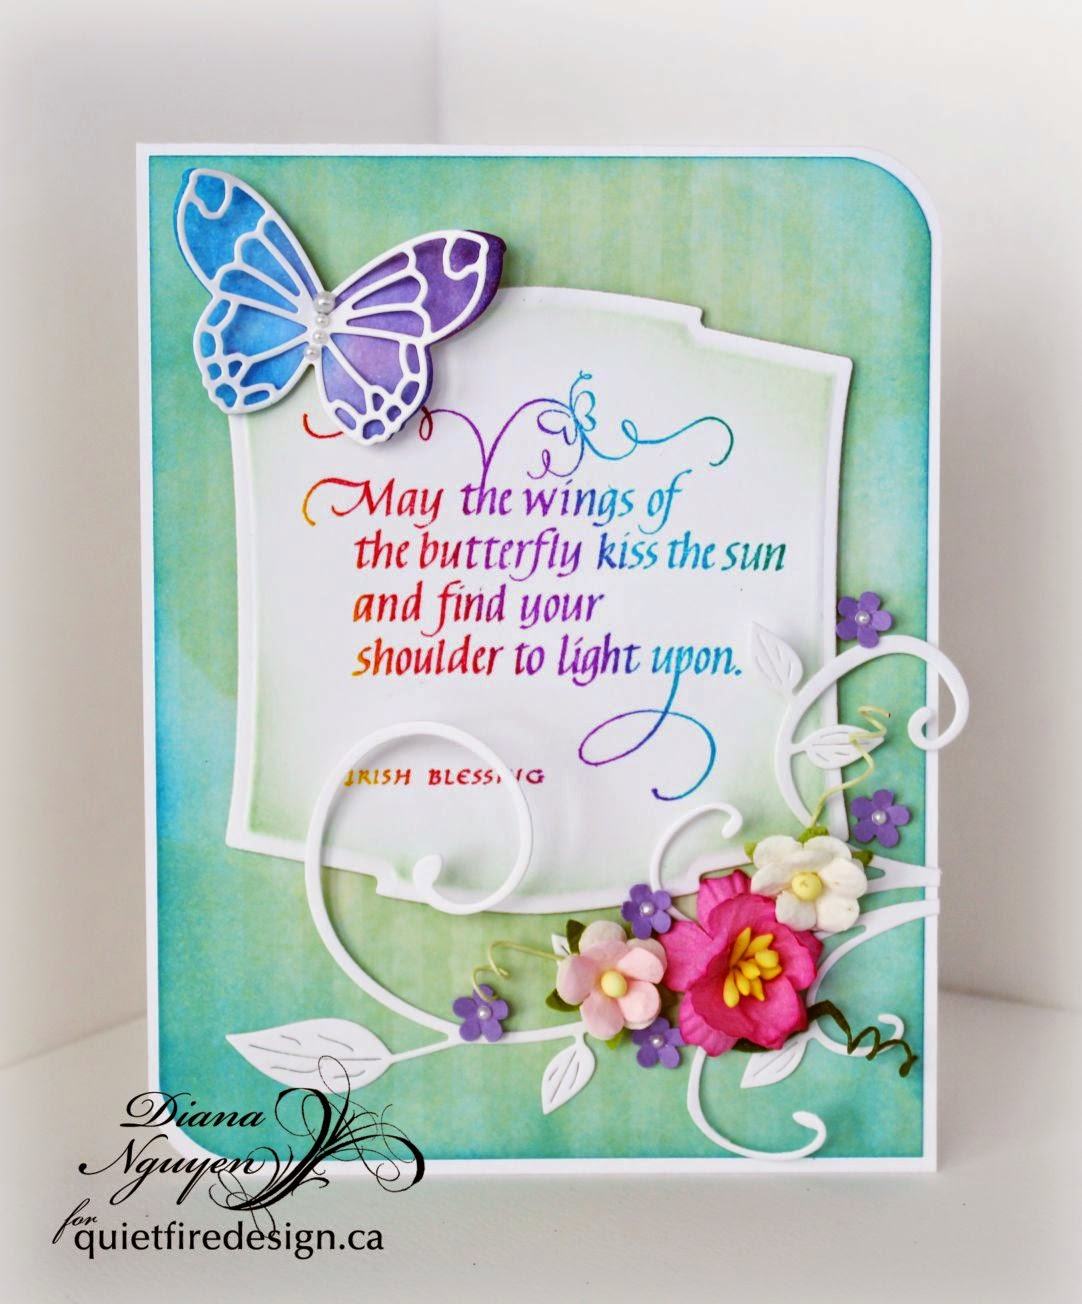 Diana Nguyen, Quietfire, Poppystamps, Spellbinders, Butterfly Circles May the Wings